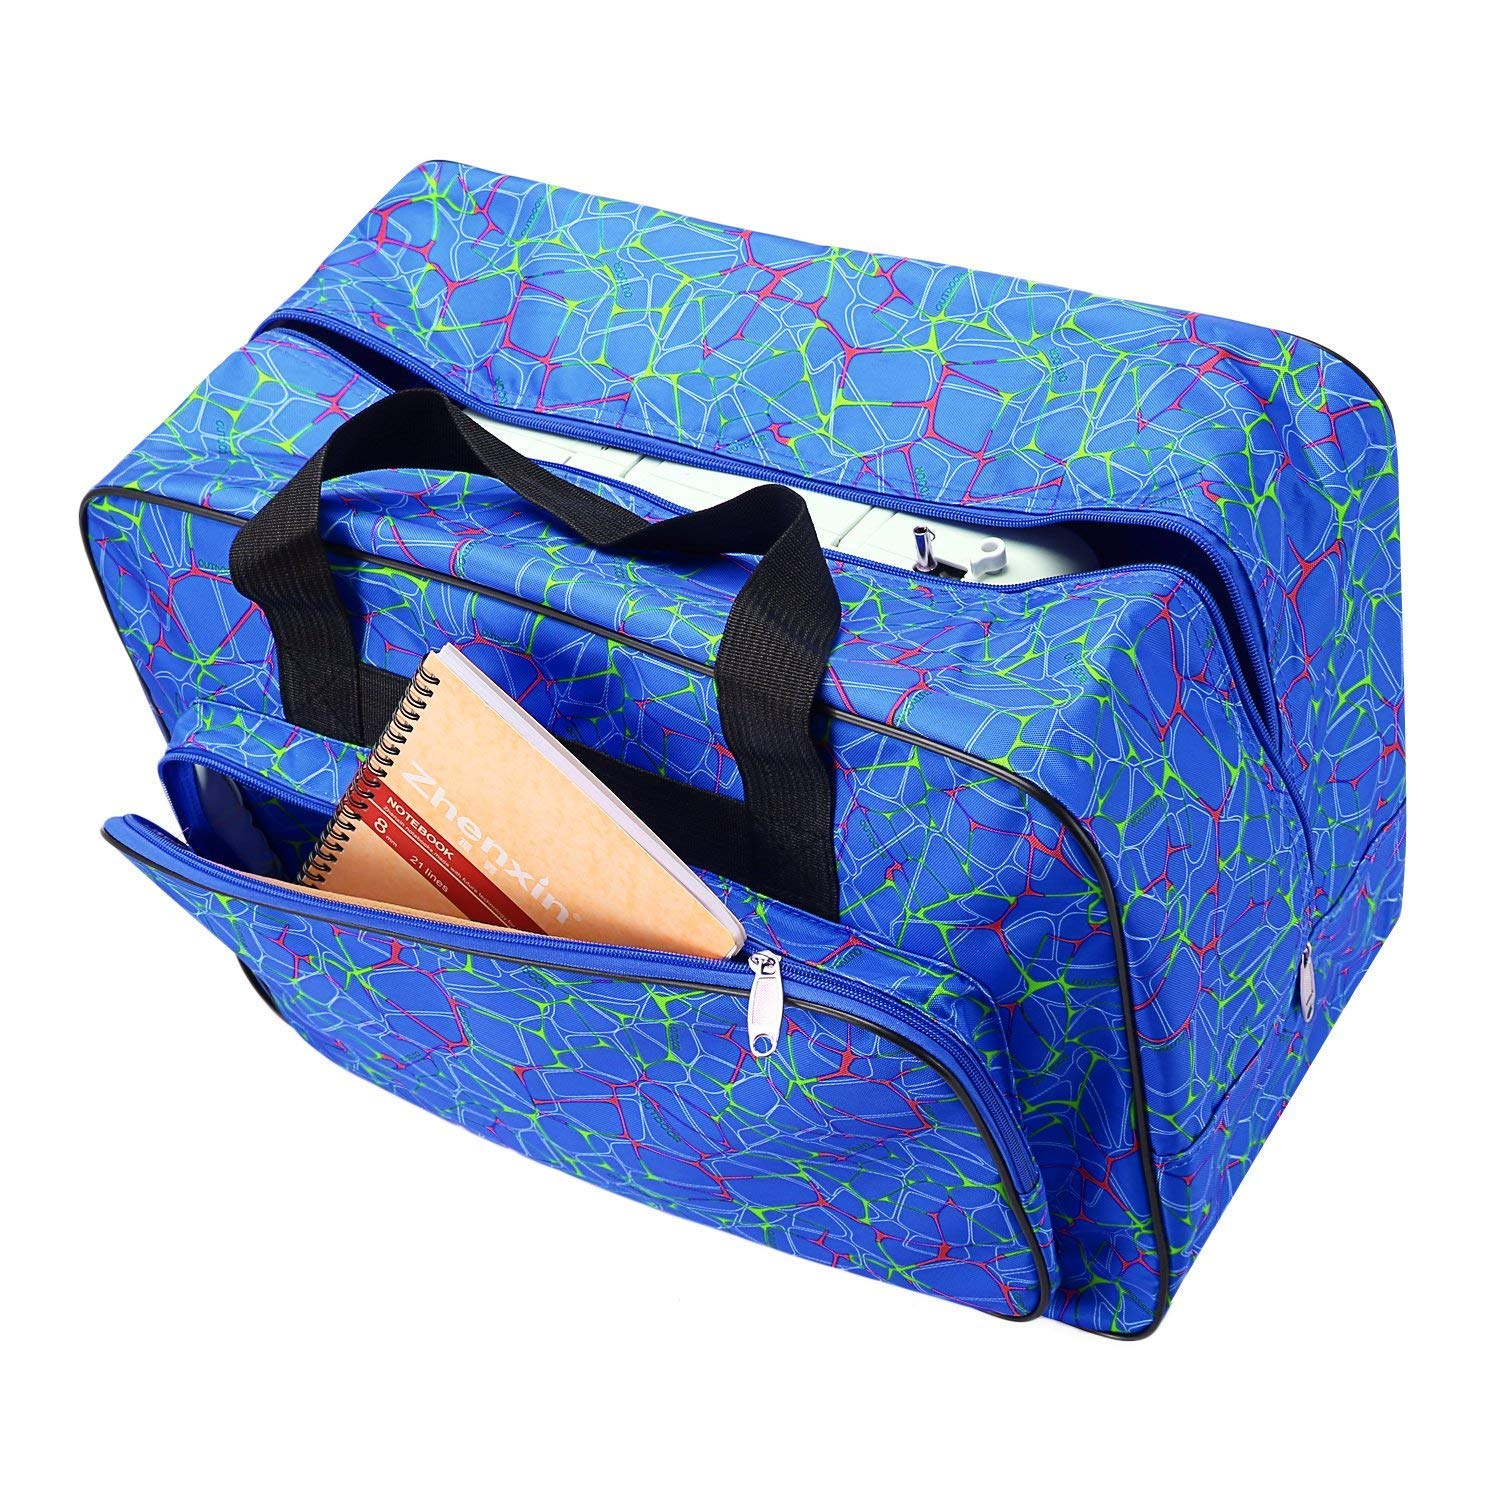 Sewing Machine Carrying Case Tote Bag,Padded Storage Cover Carrying Case with Pockets and Handles ,Canvas,with 3 Pieces Small,Medium and Big Size